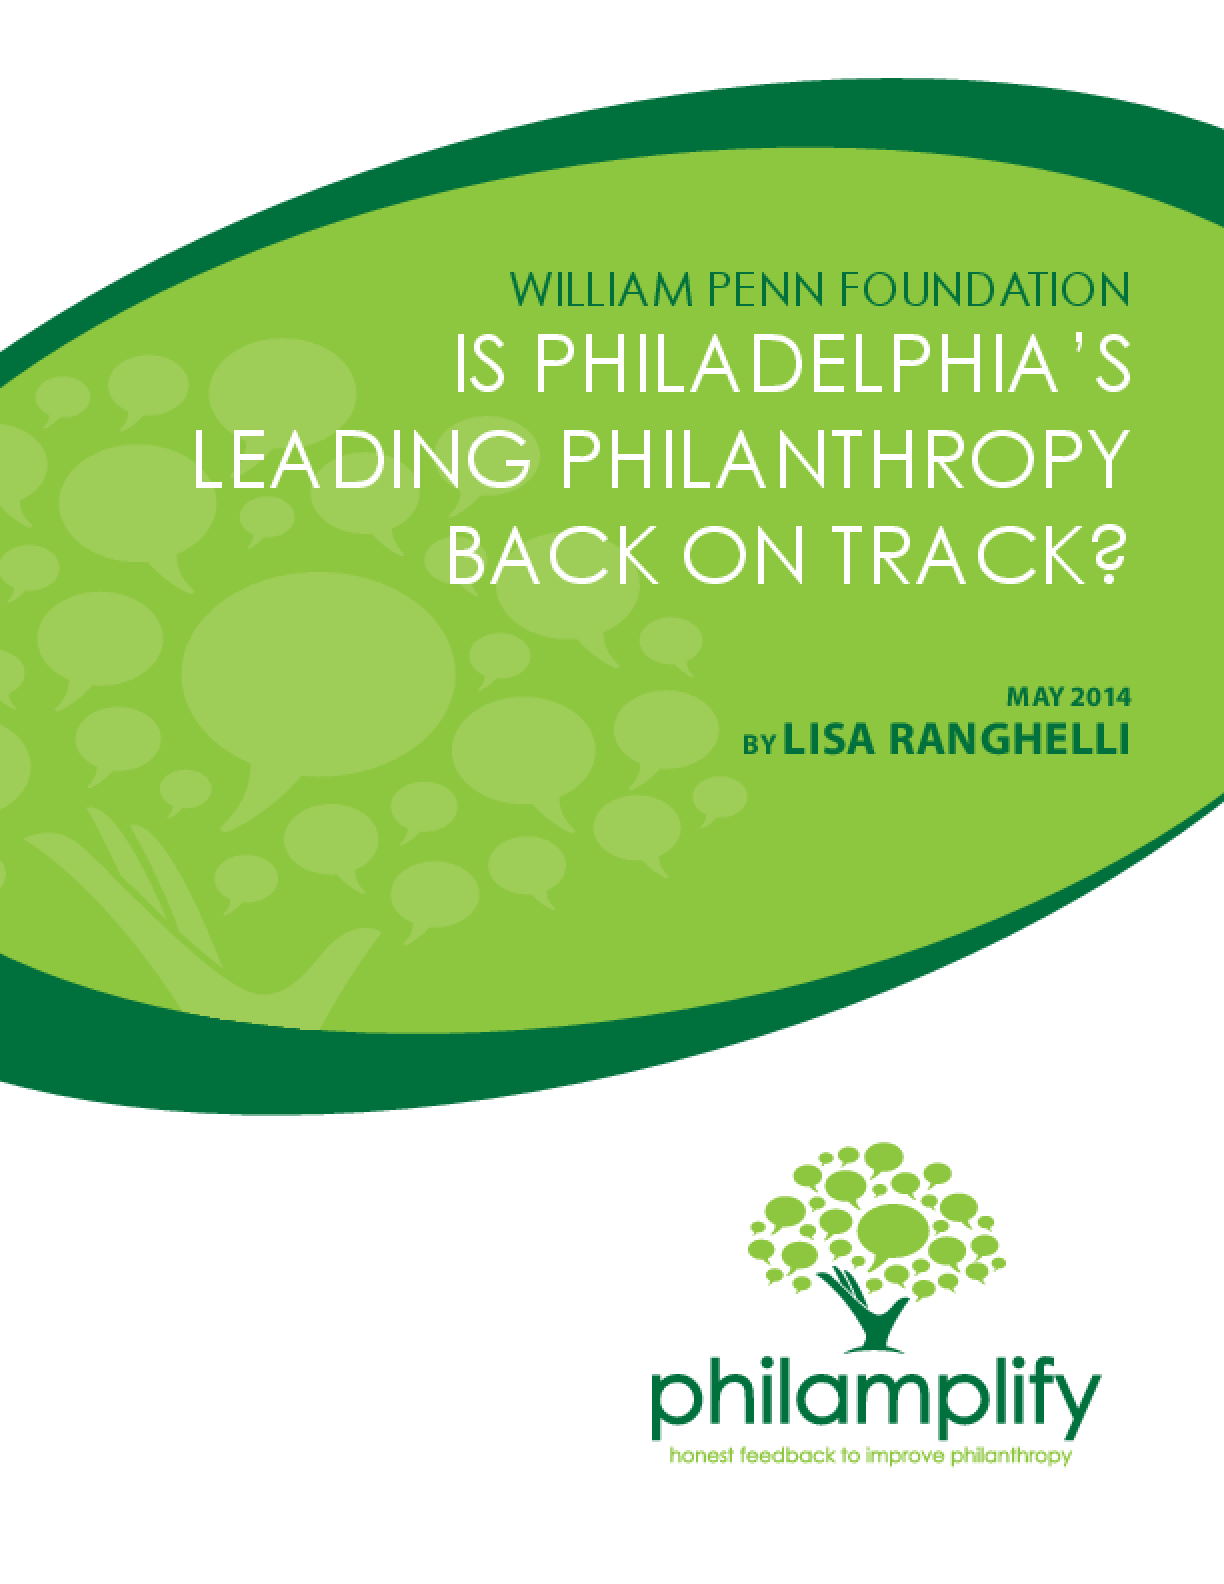 William Penn Foundation - Is Philadelphia's Leading Philanthropy Back on Track?